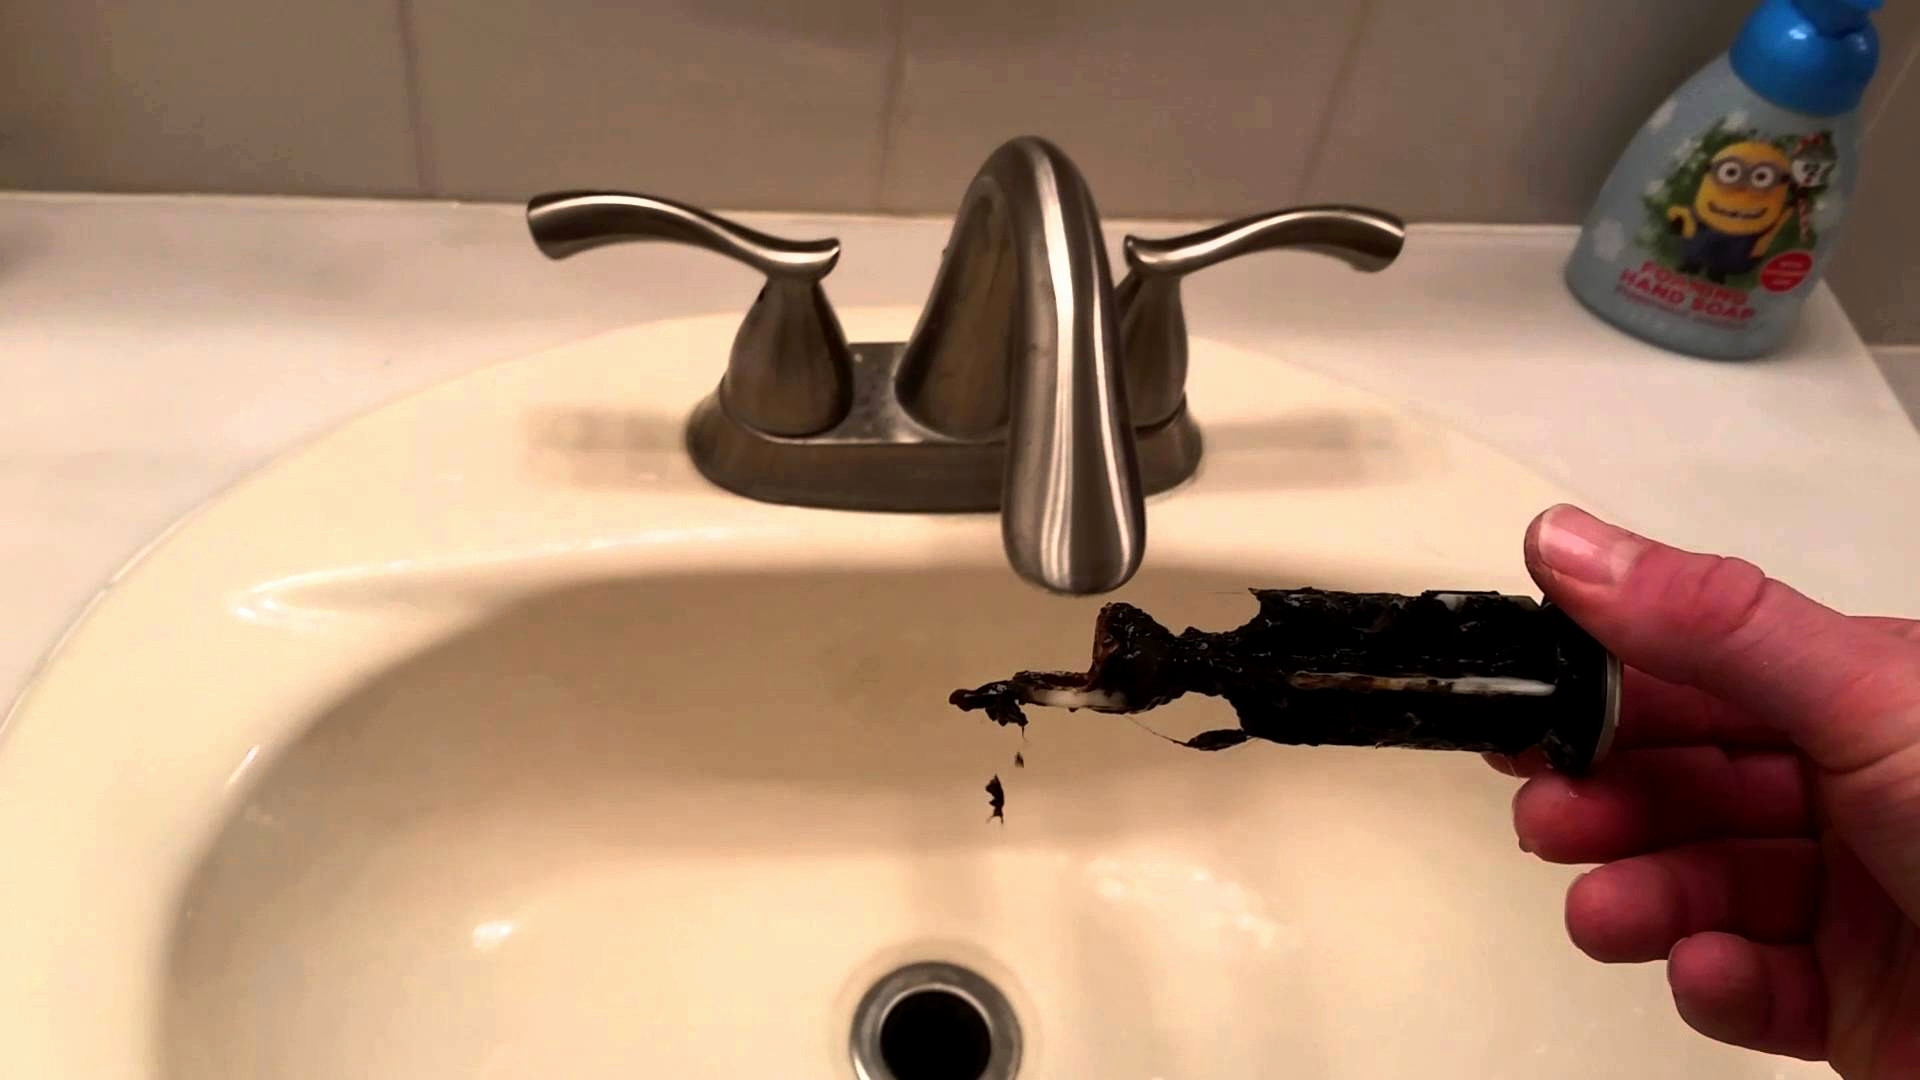 Beautiful How To Connect Drain Pipe To Bathroom Sink Awesome Kitchen Sink Won in Bathroom Sink Pipes